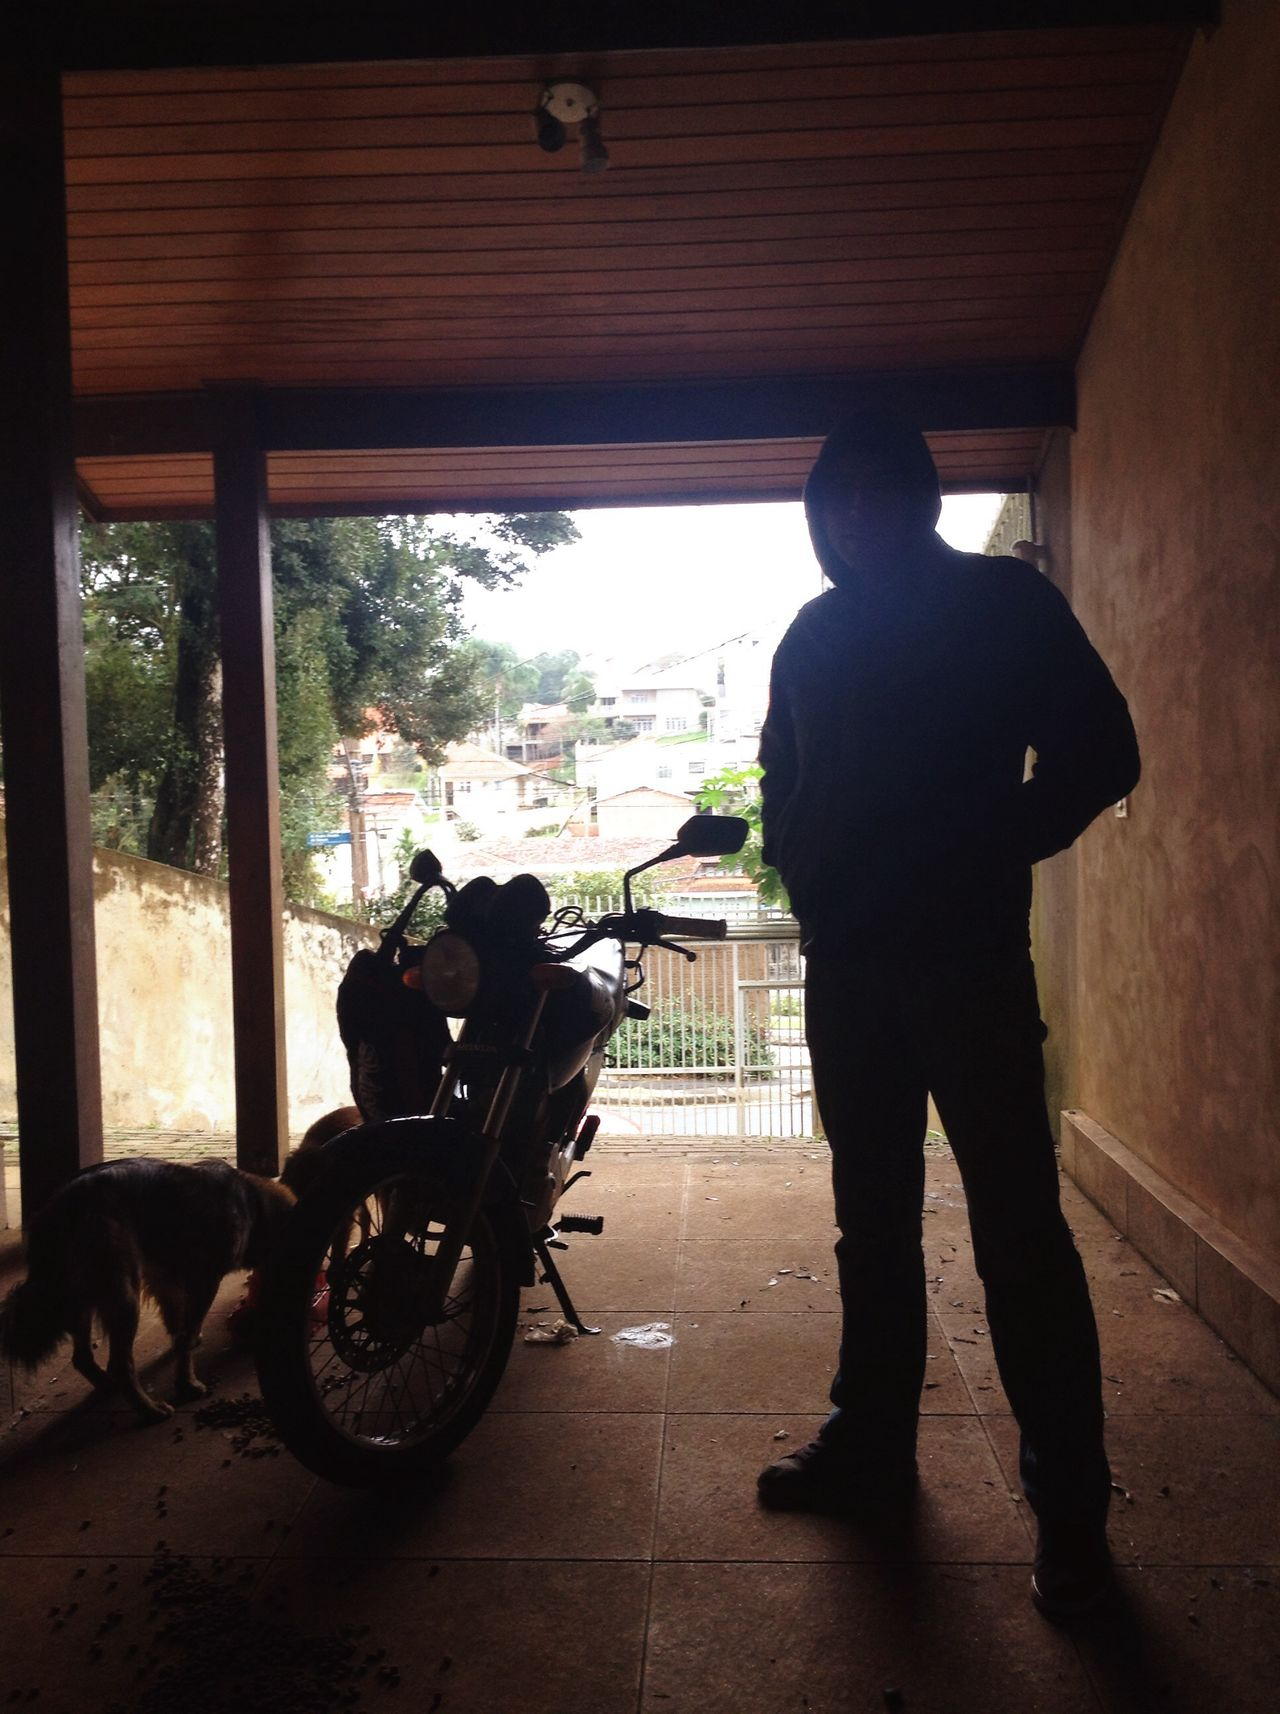 Photograph Variation Day Roher Teig roher Real People Indoors  Motorcycle Full Length Transportation One Person Men Lifestyles Standing Built Structure Architecture One Man Only Mammal Adult People